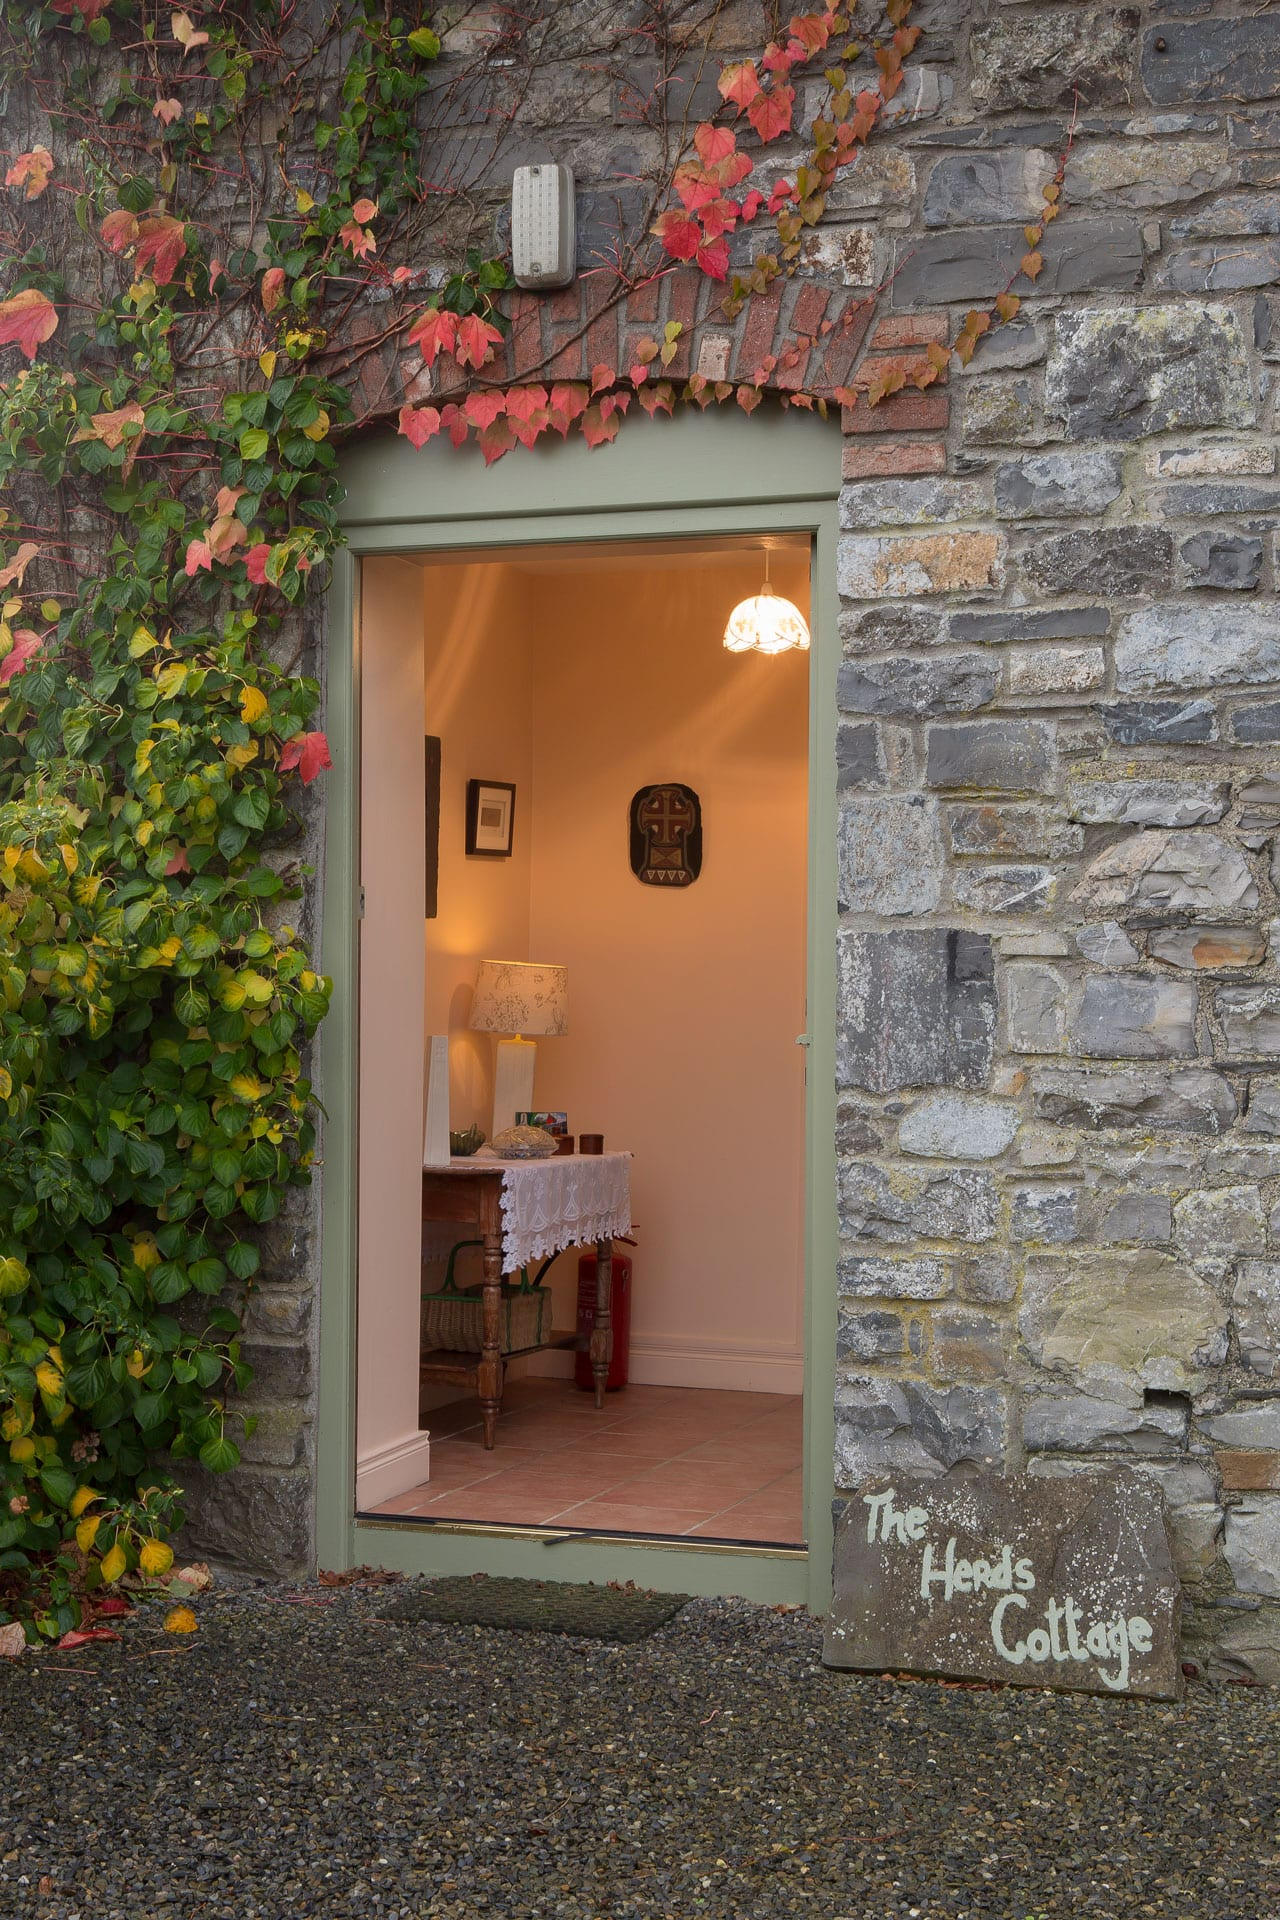 Open Door Outside View Creeper Ivy Holiday-Homes-Ireland-Meath-Dunshaughlin-Self-Catering